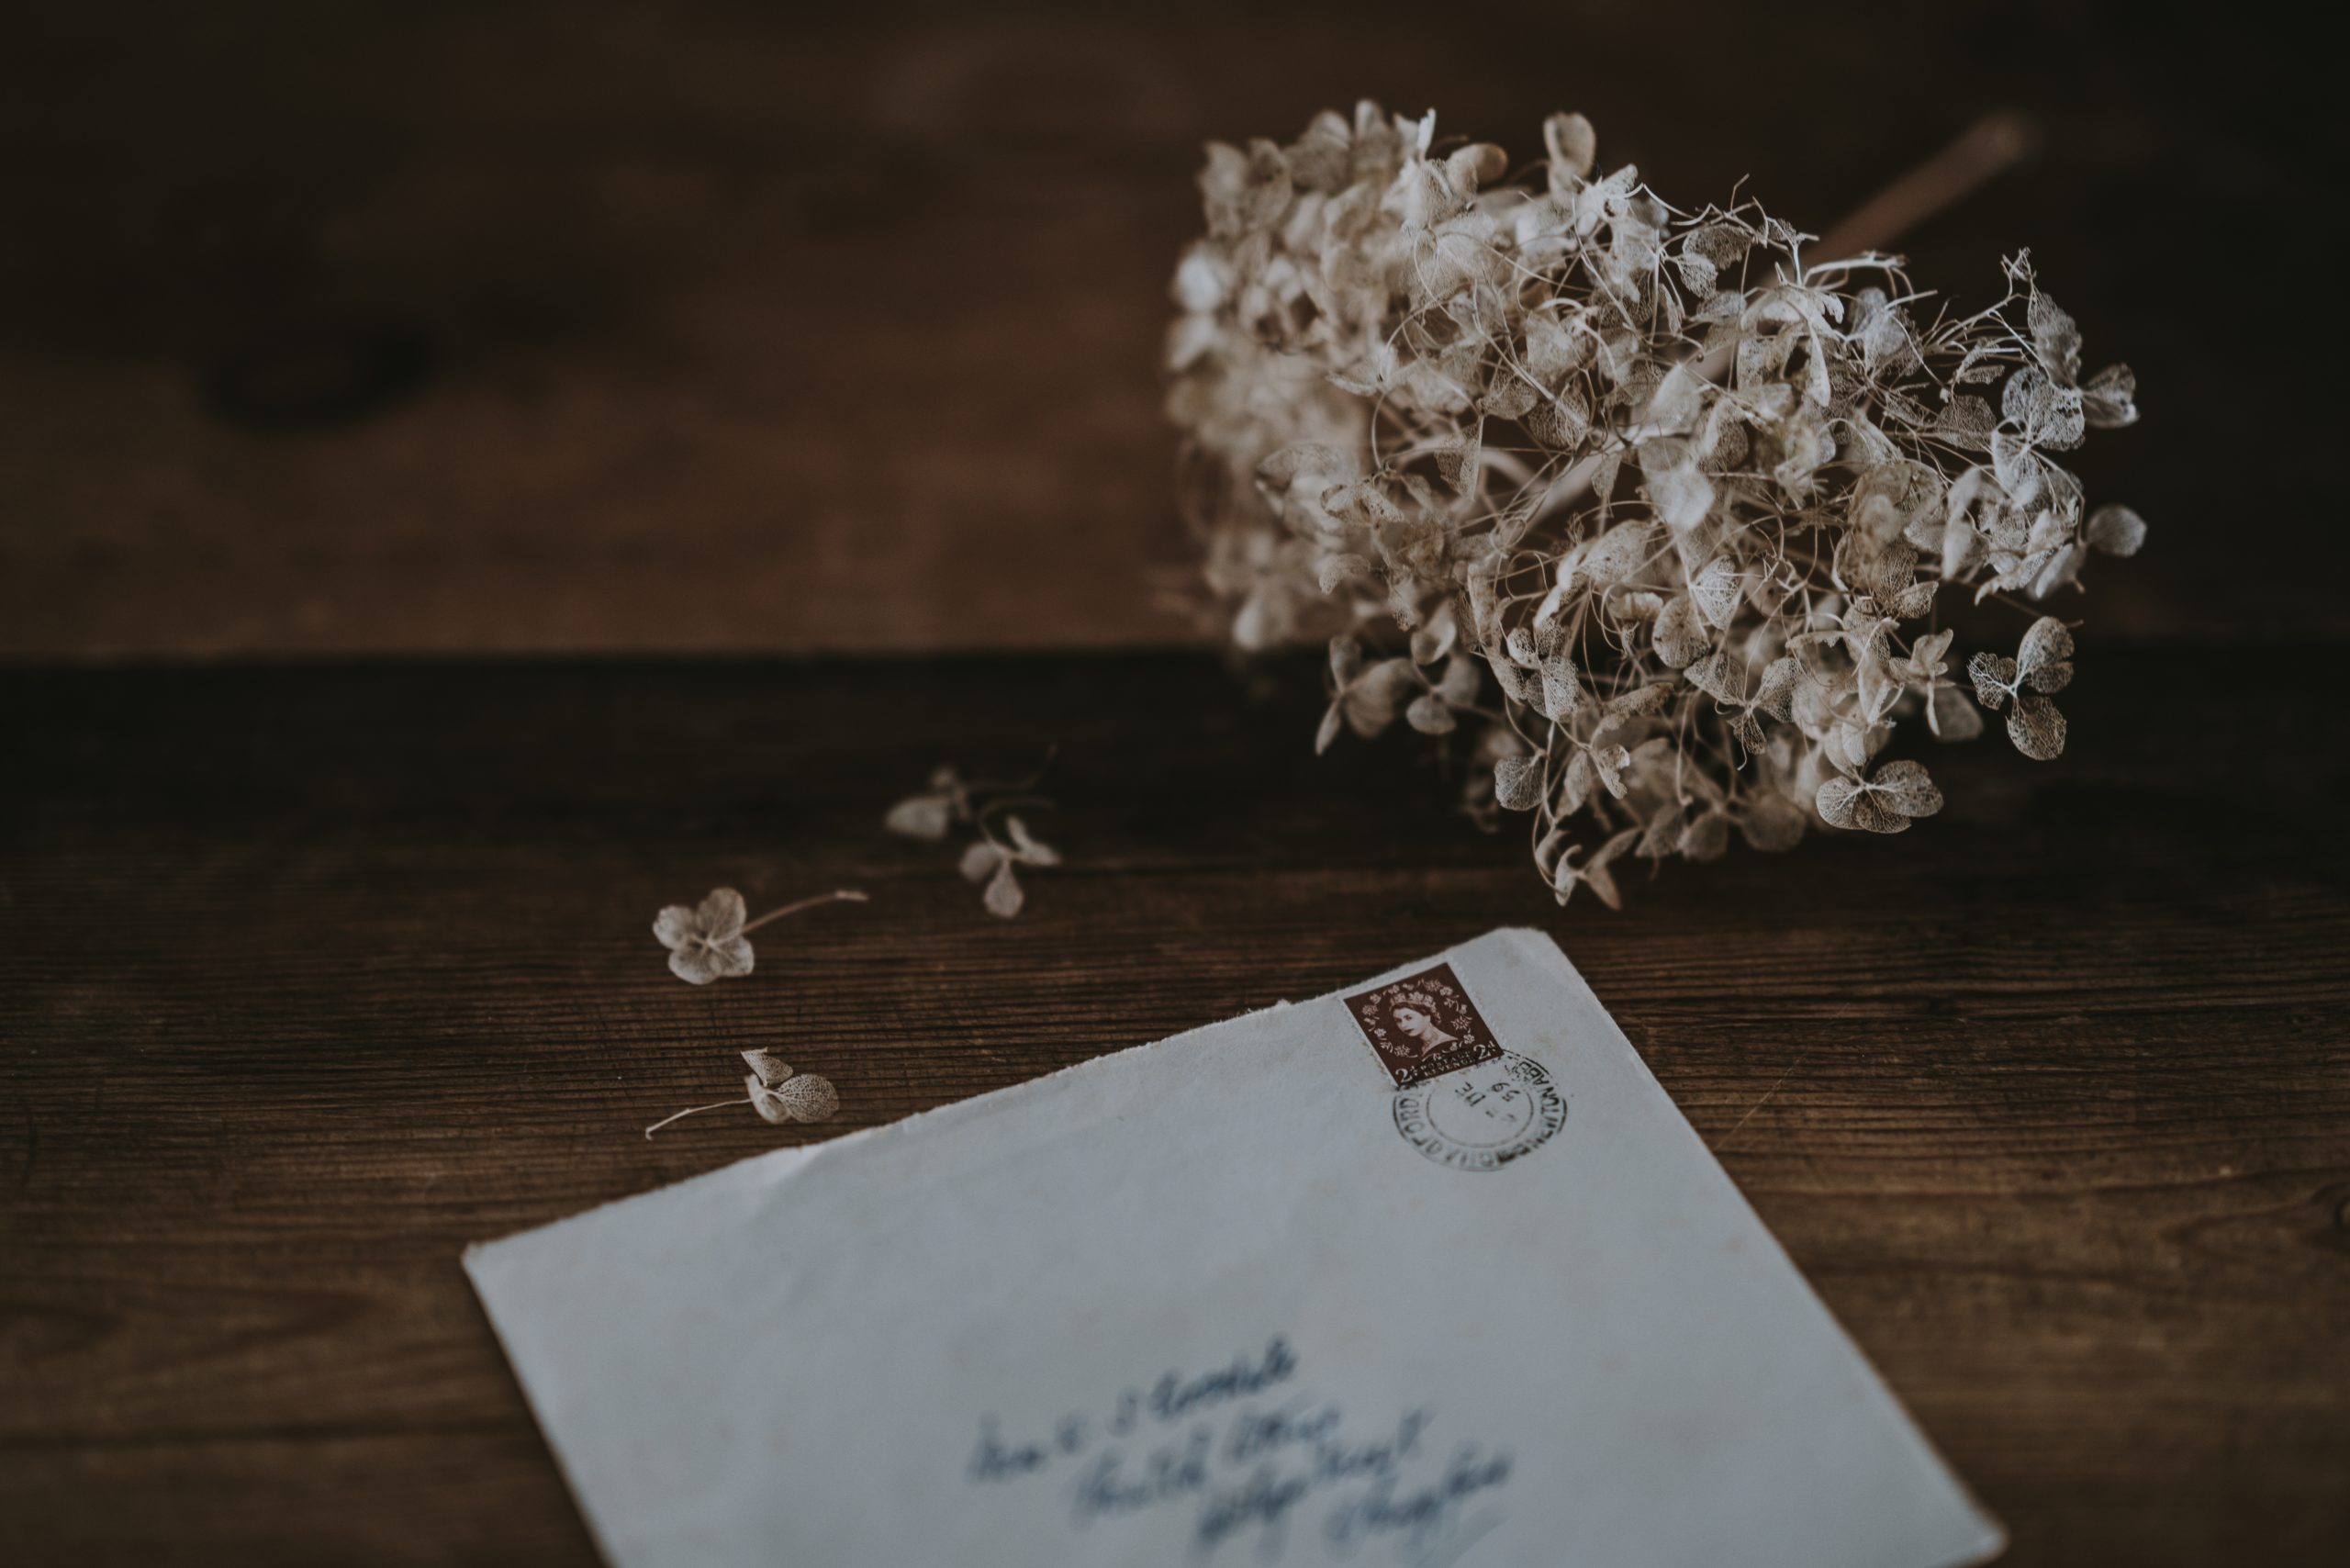 An envelope with a scrawled address and stamp sits on an aged wooden table, next to a collection of white dried flowers that are shedding petals across the table.